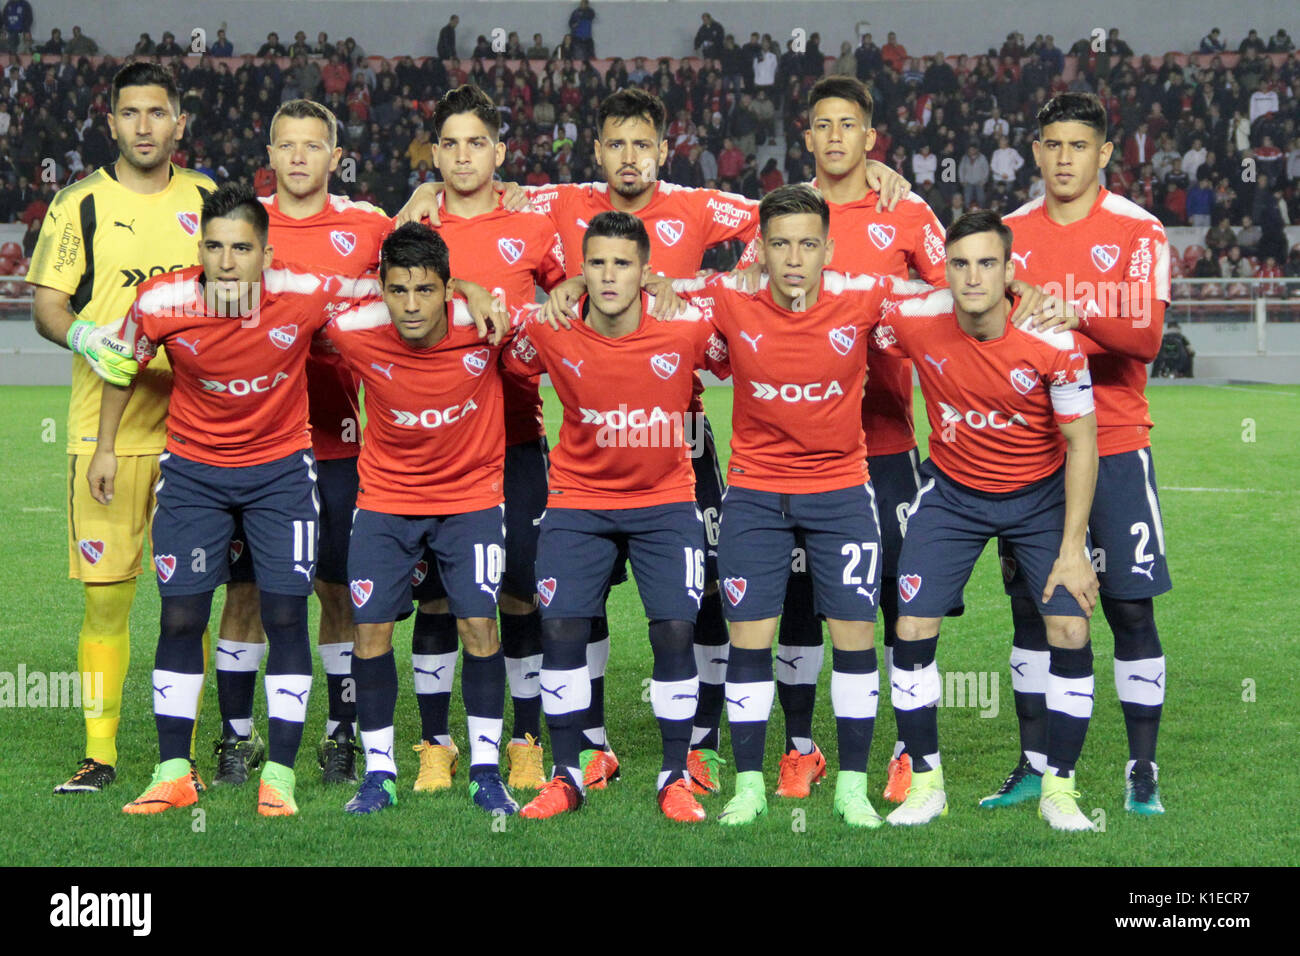 Team of Independiente during the match between Independiente x Huracan for  the 1st round of Superliga Argentina. Credit: Néstor J. Beremblum/Alamy  Live News